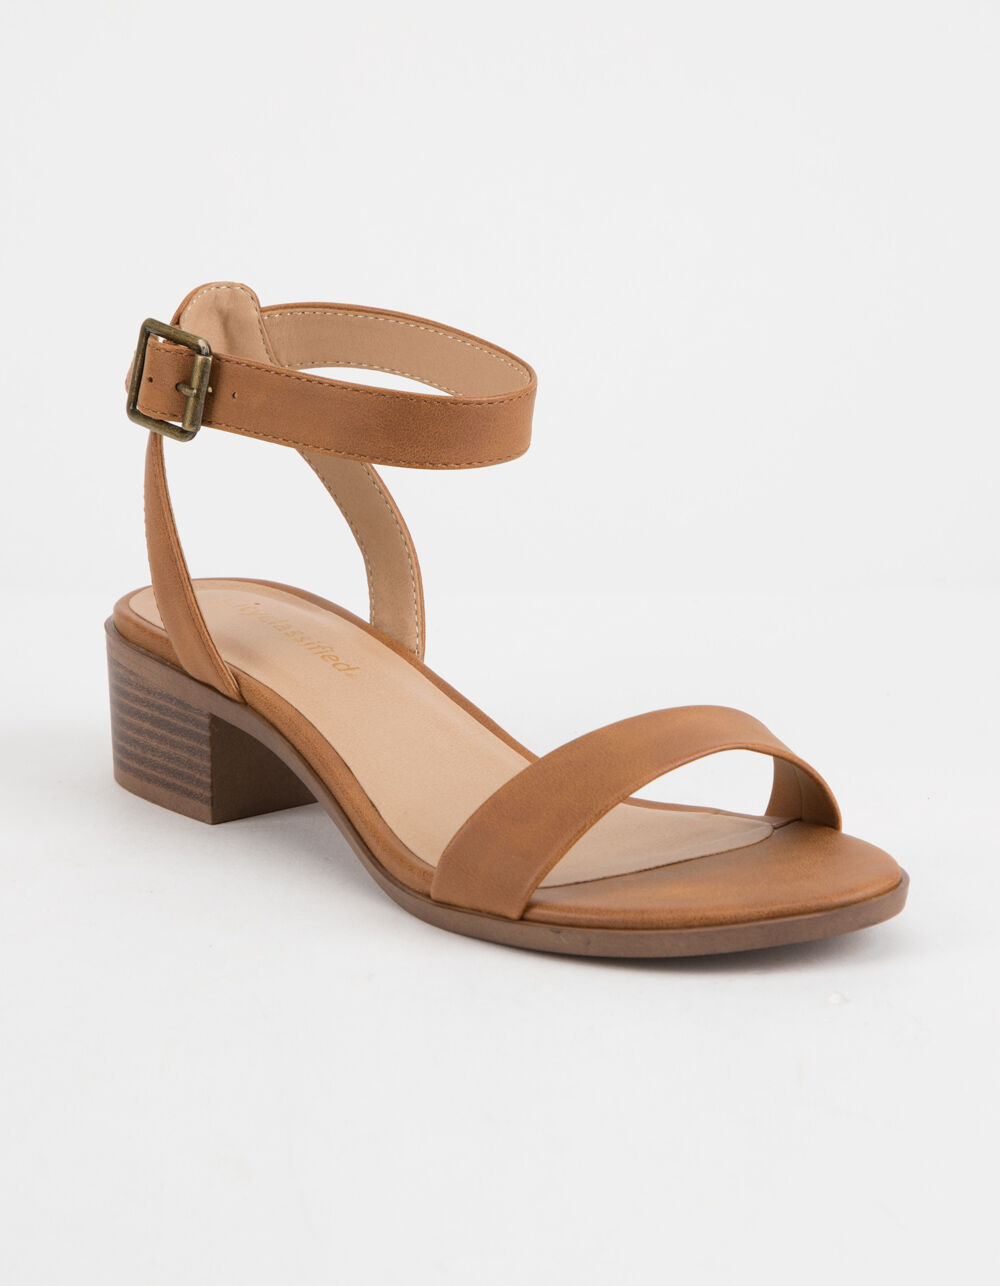 CITY CLASSIFIED Ankle Strap Cognac Heeled Sandals